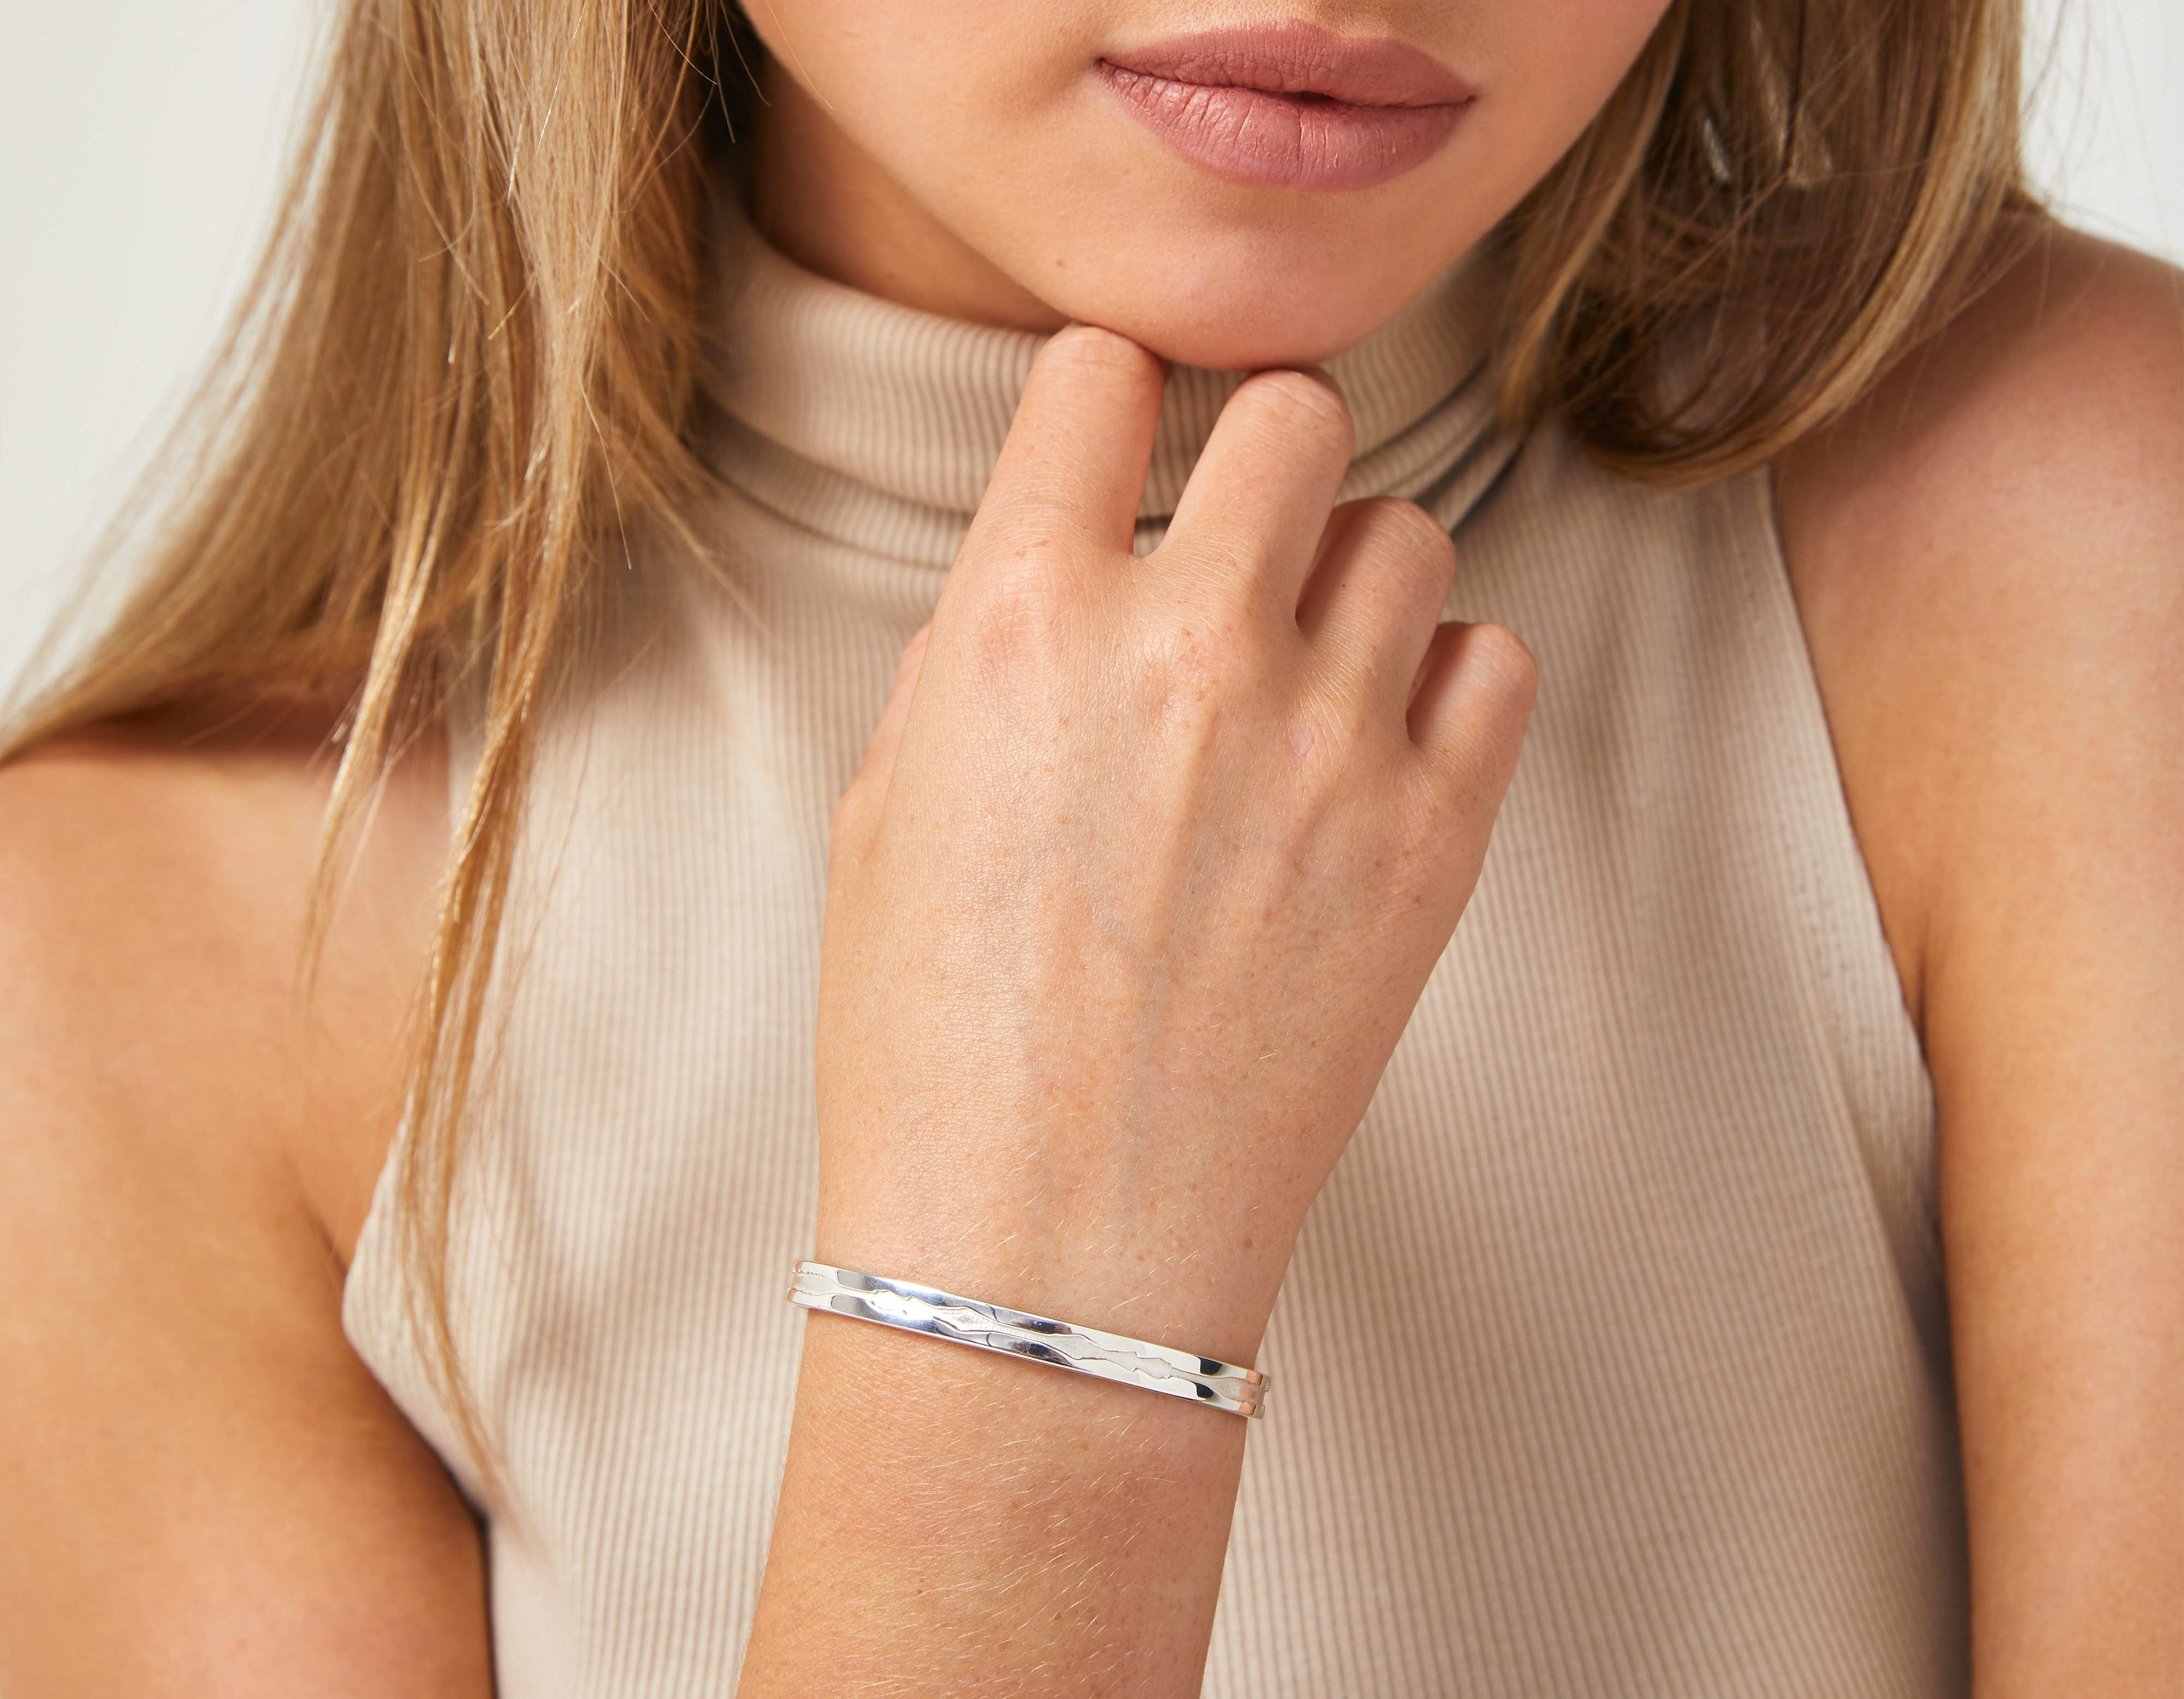 The Outer Wave Bracelet in White Gold on a female